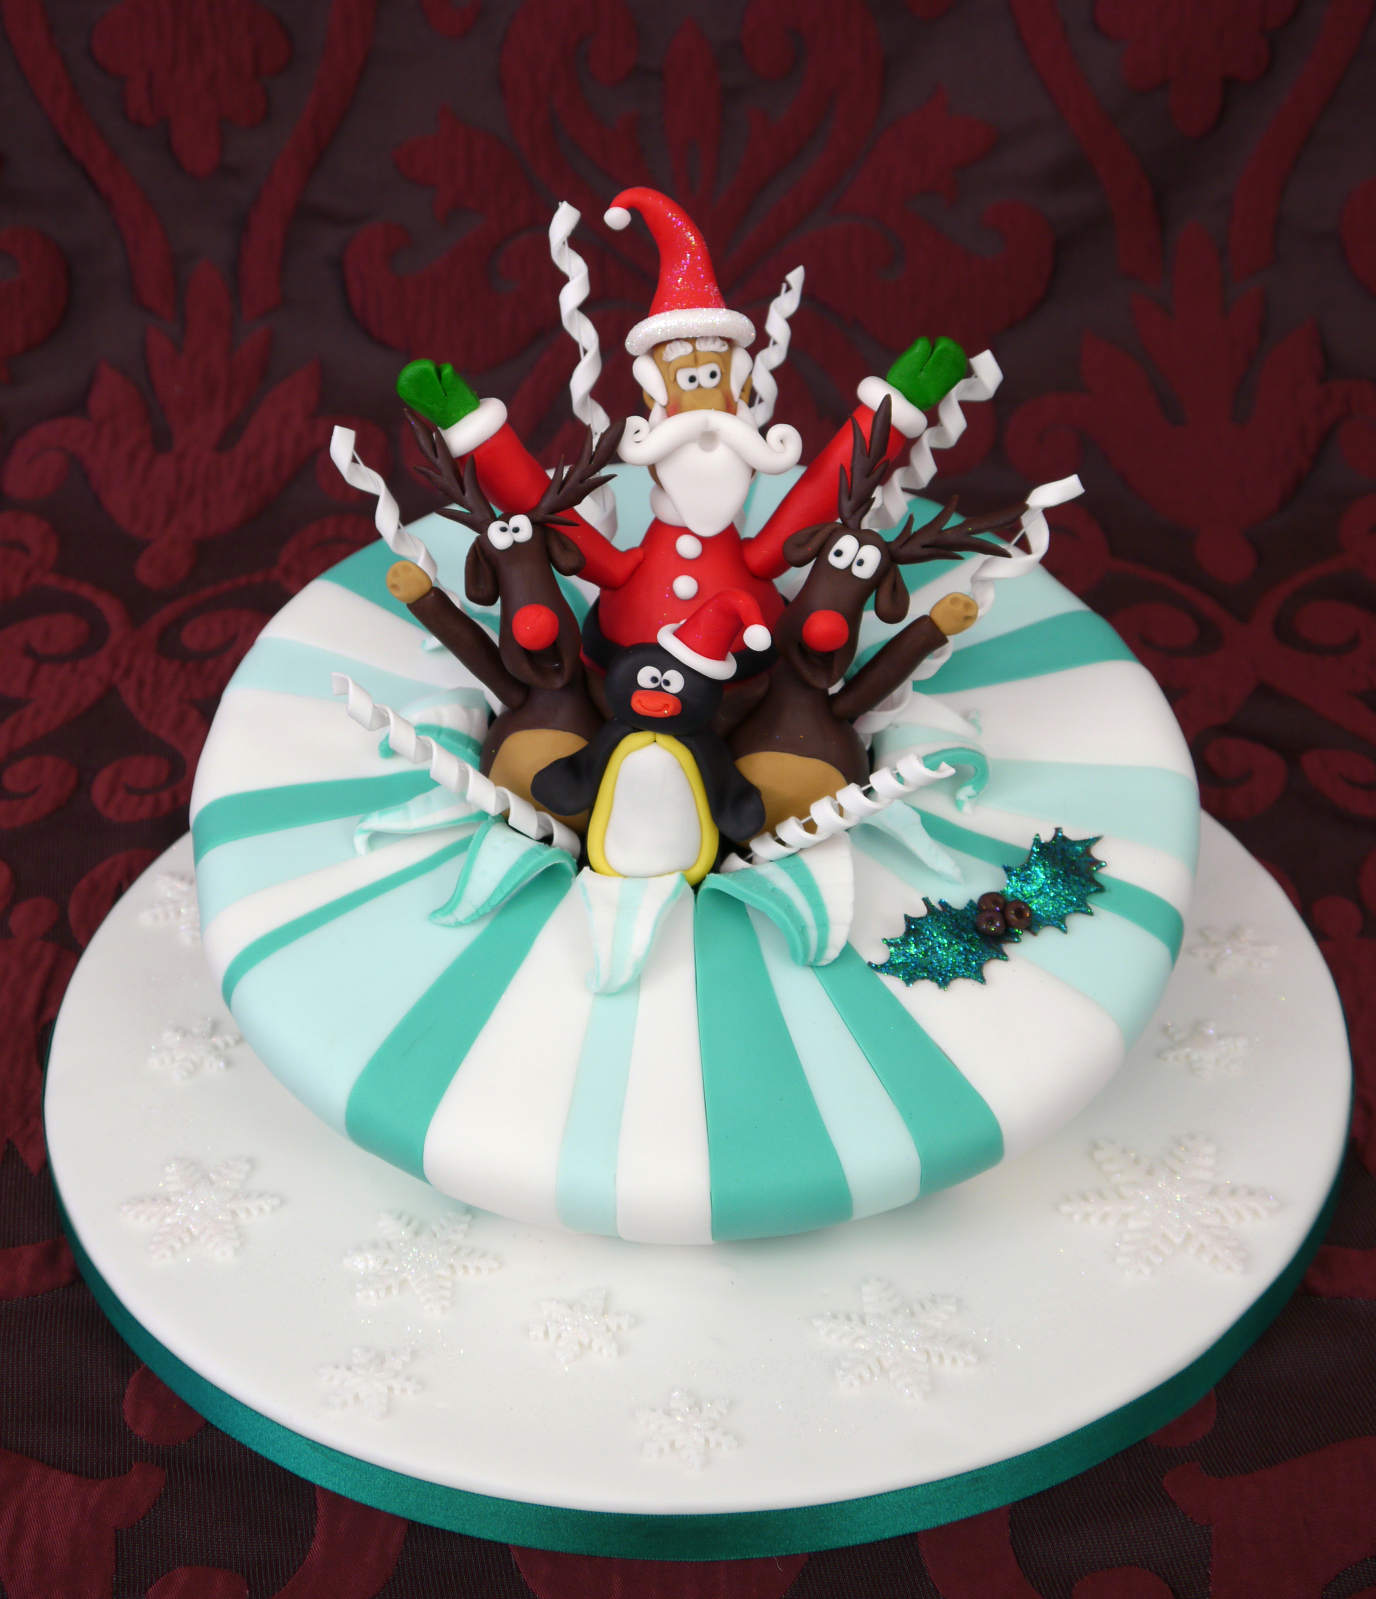 Christmas Cake Decorations & Christmas Cakes u2013 Decoration Ideas | Little Birthday Cakes